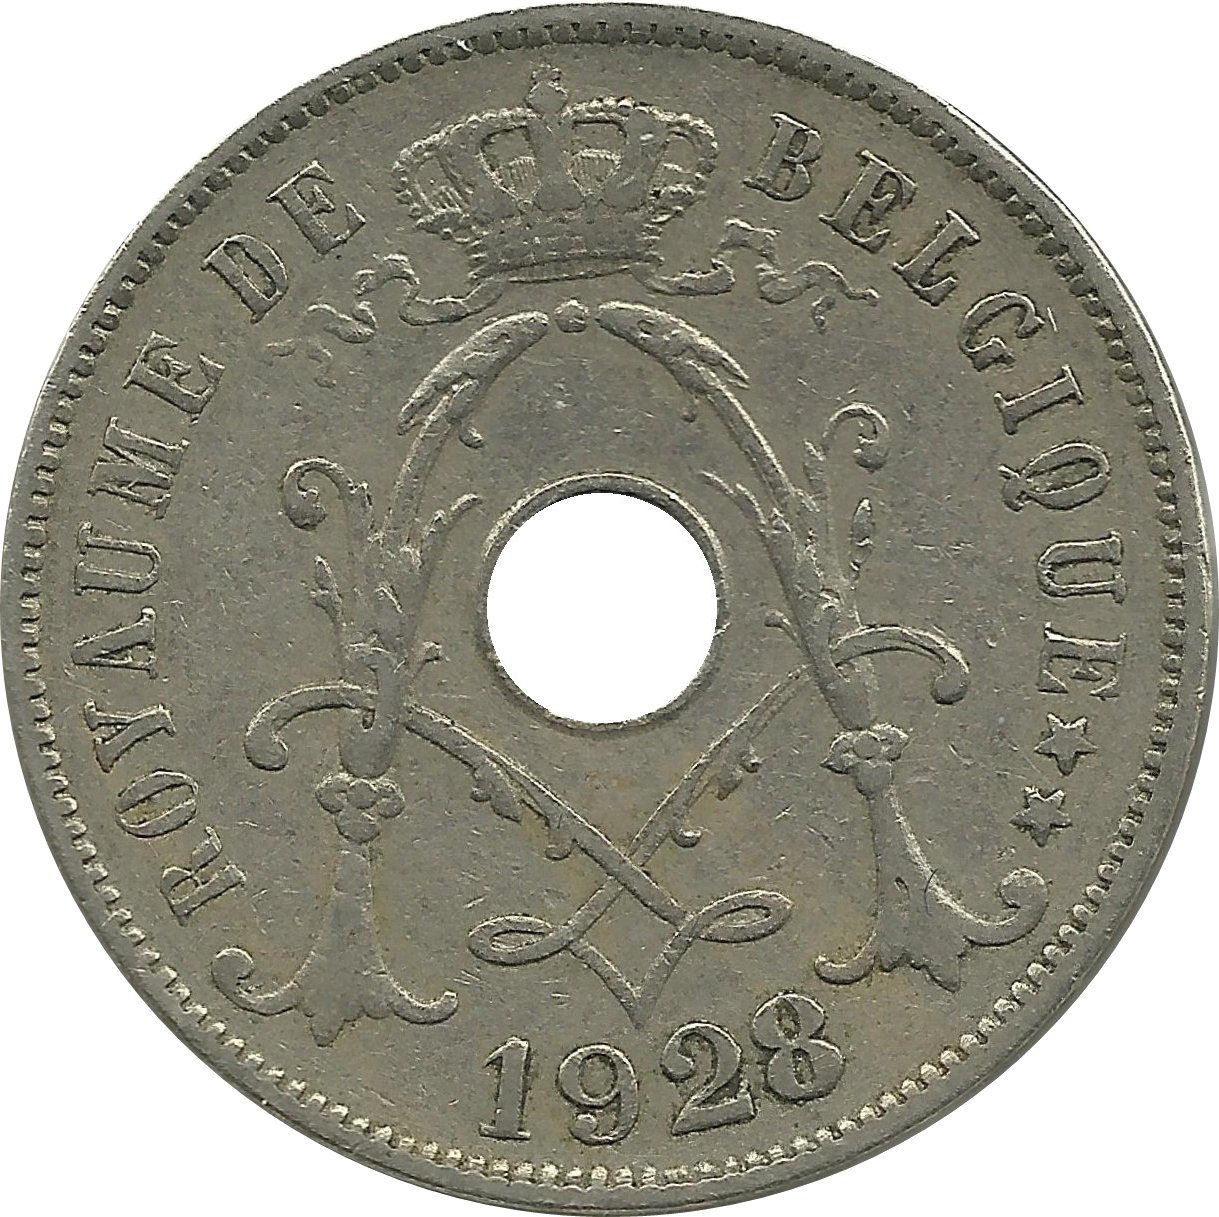 Old France Coin Circulated 1926 5 Centimes